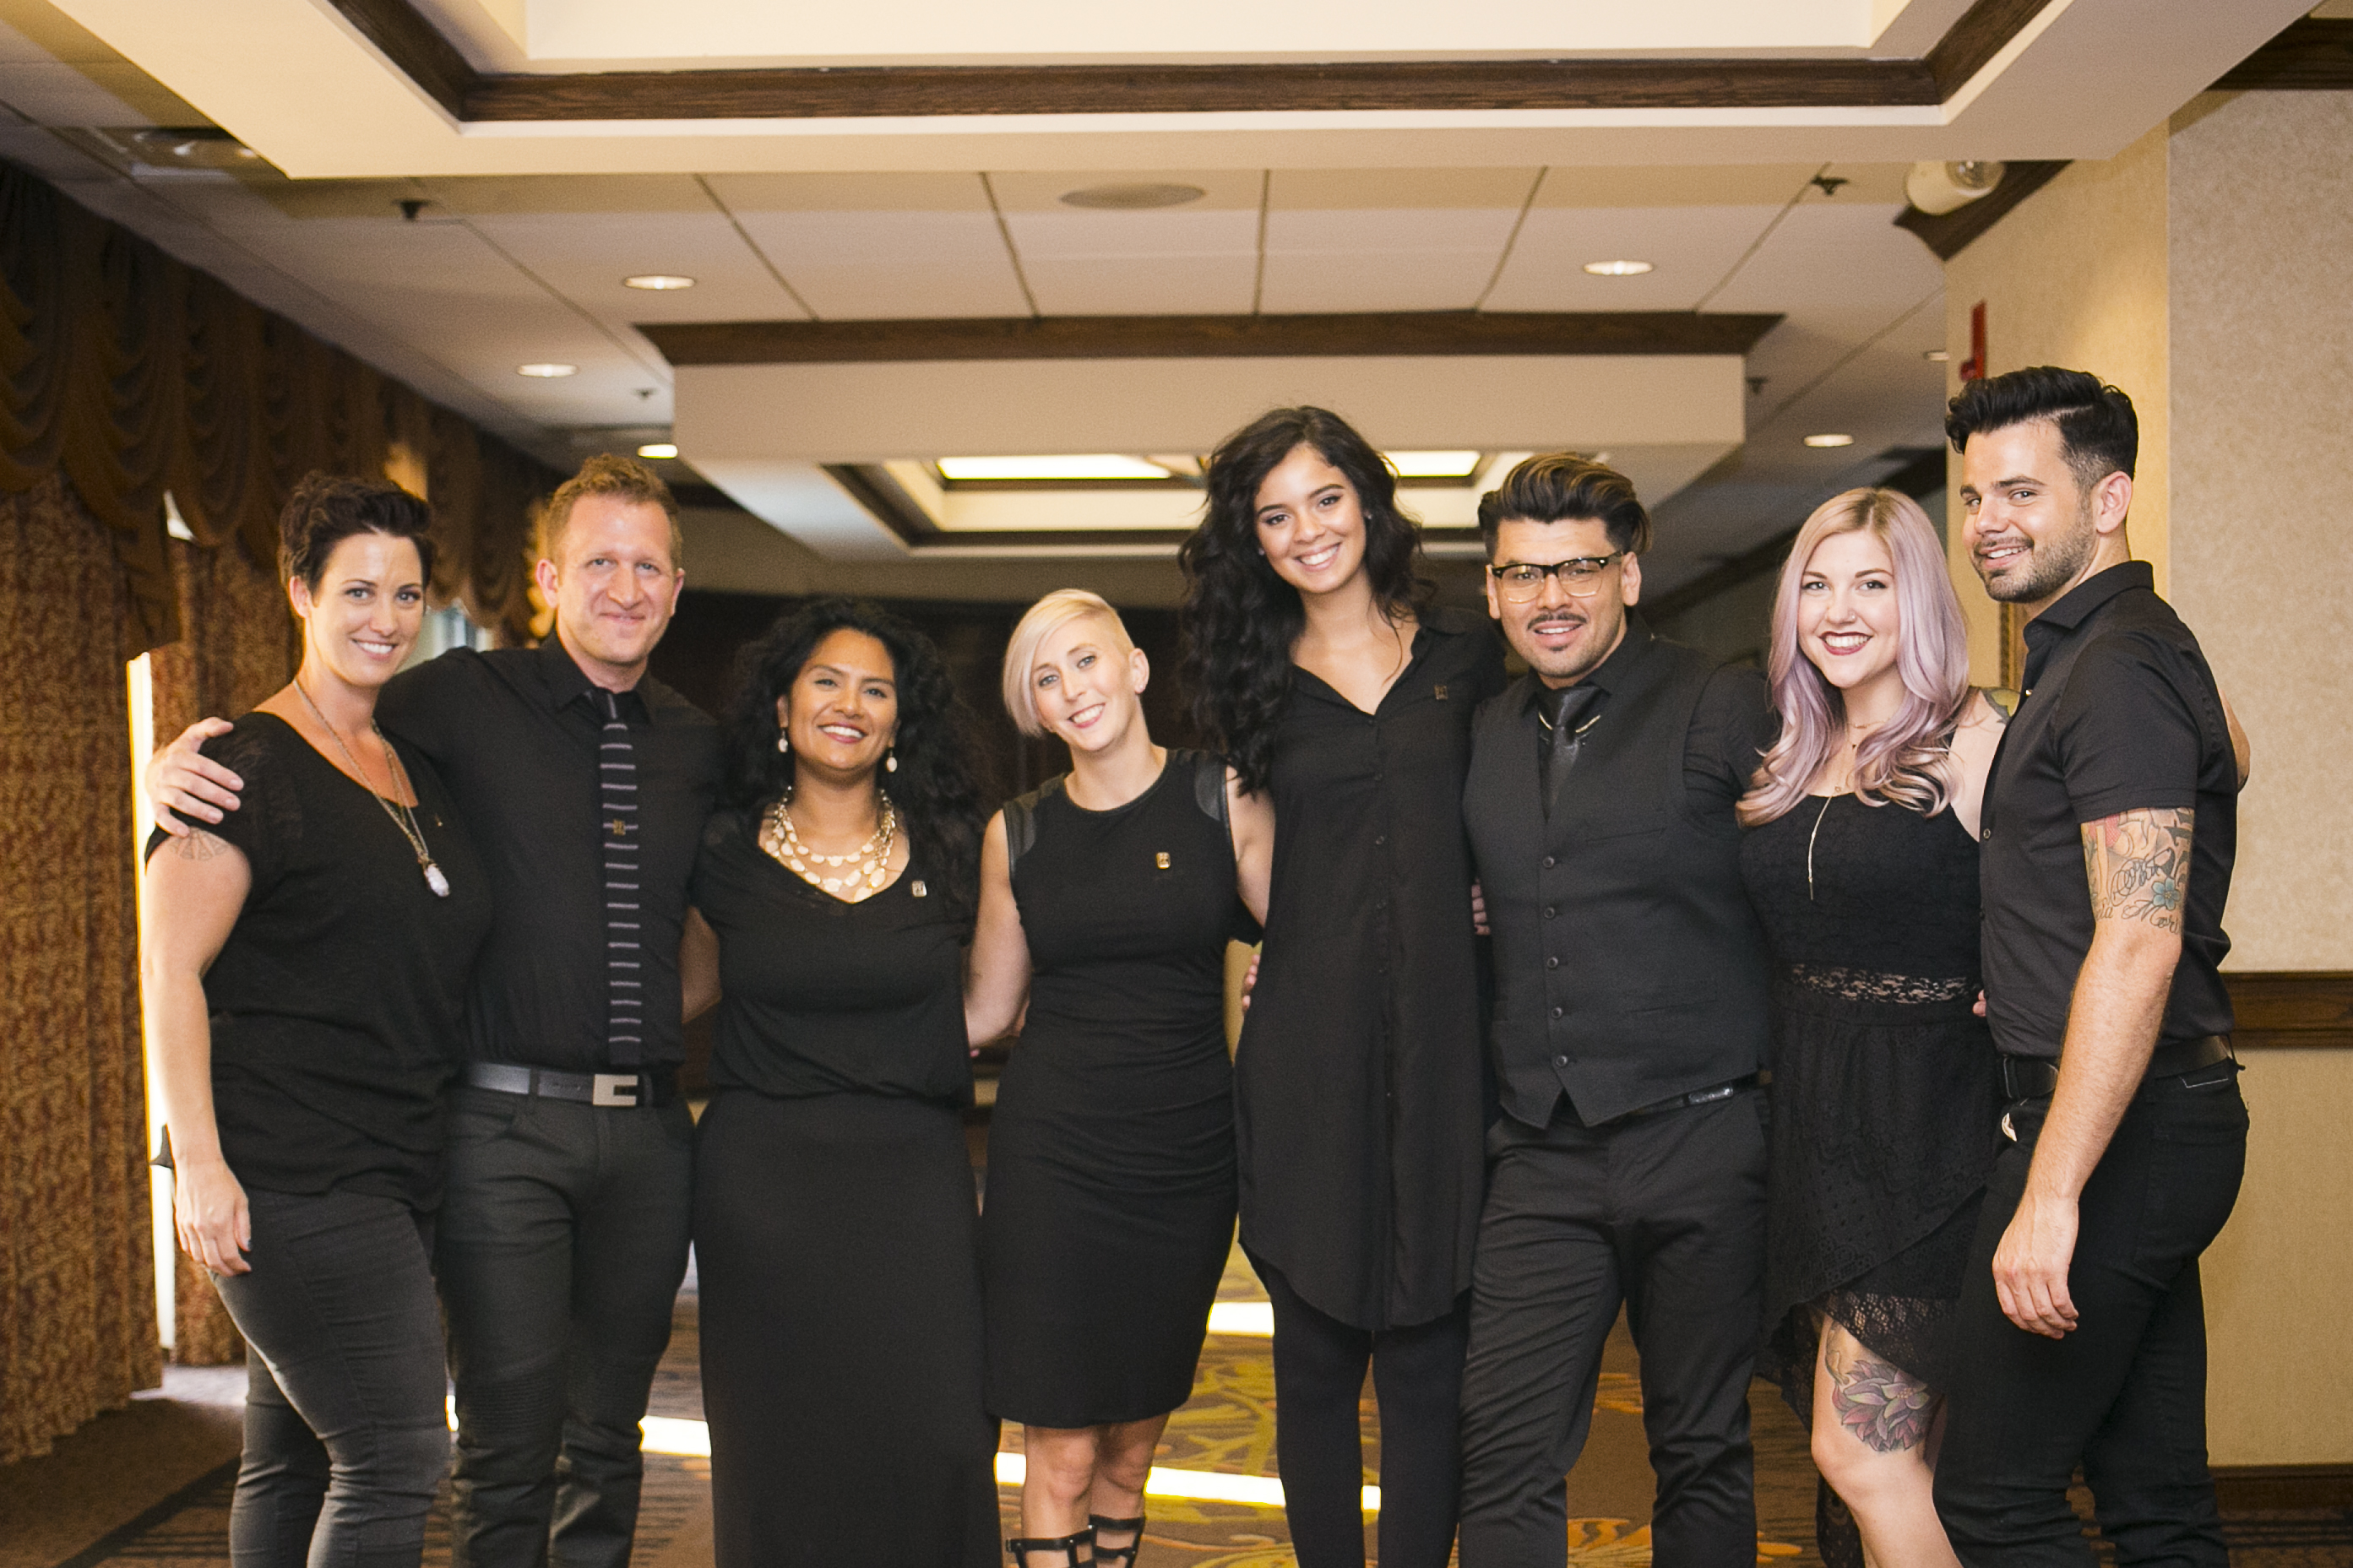 Left to right: Lindsey Misale, David Young (brand ambassador), Raquel Deanda-Wyatt, Kelsey Higginbotham,